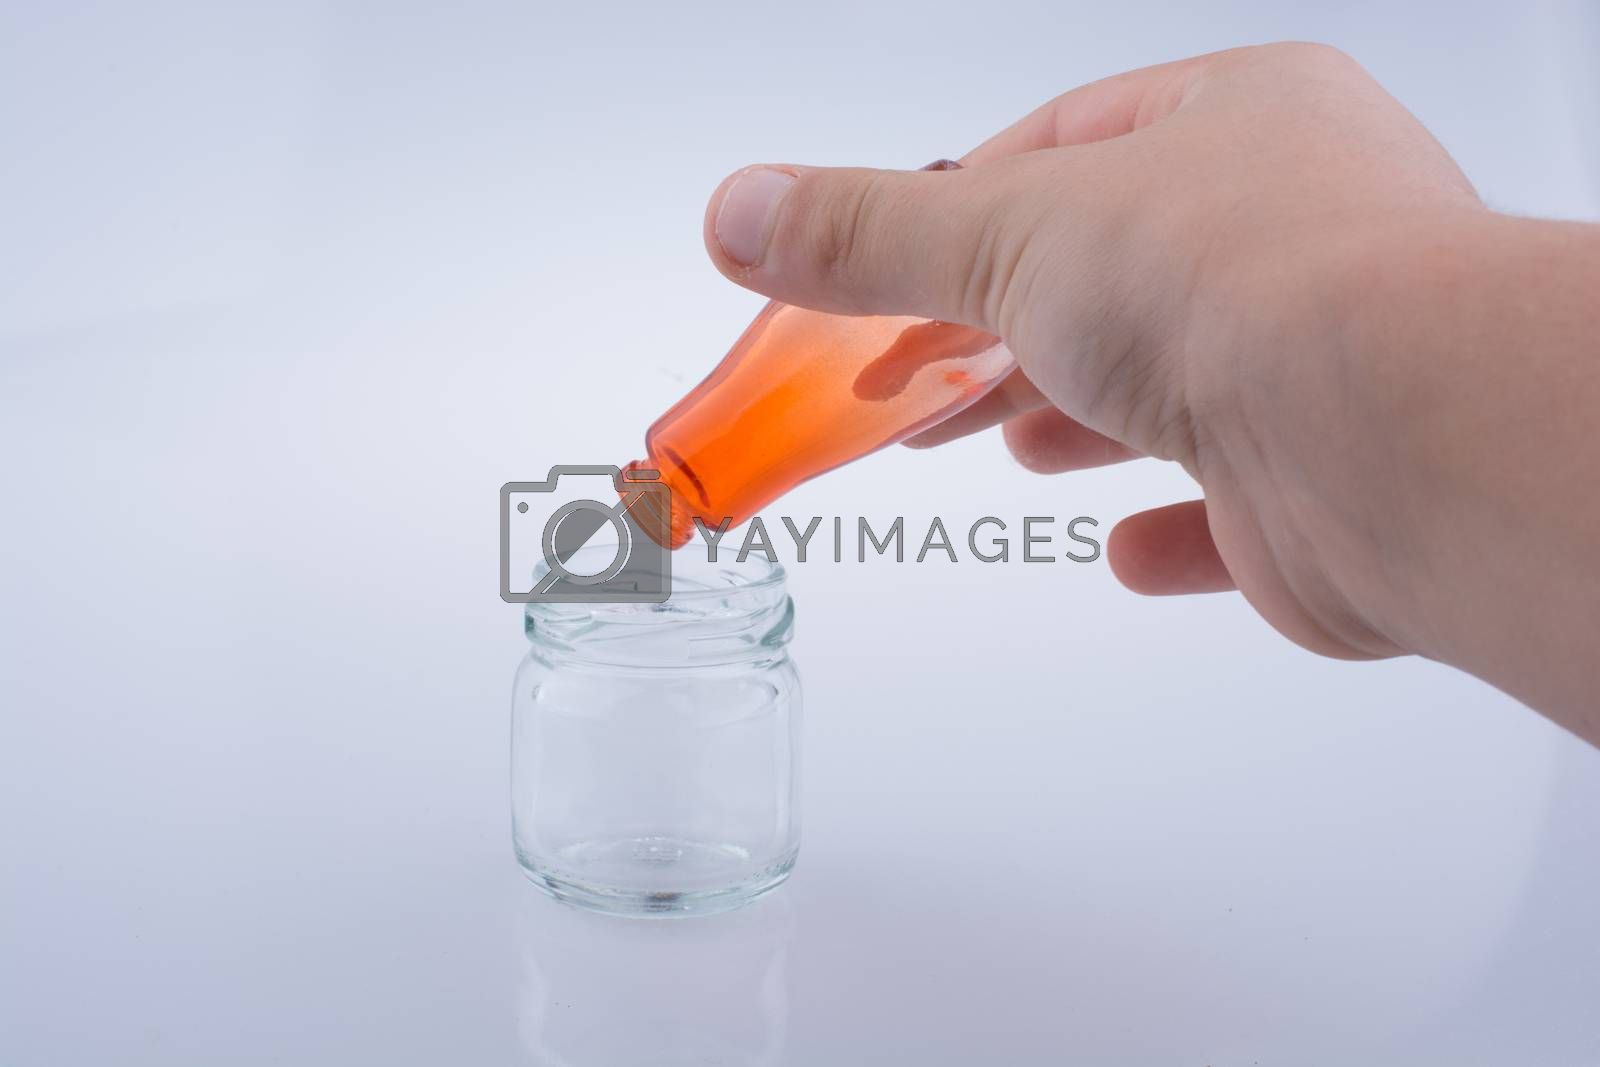 Little colorful  bottle over a jar on a white background